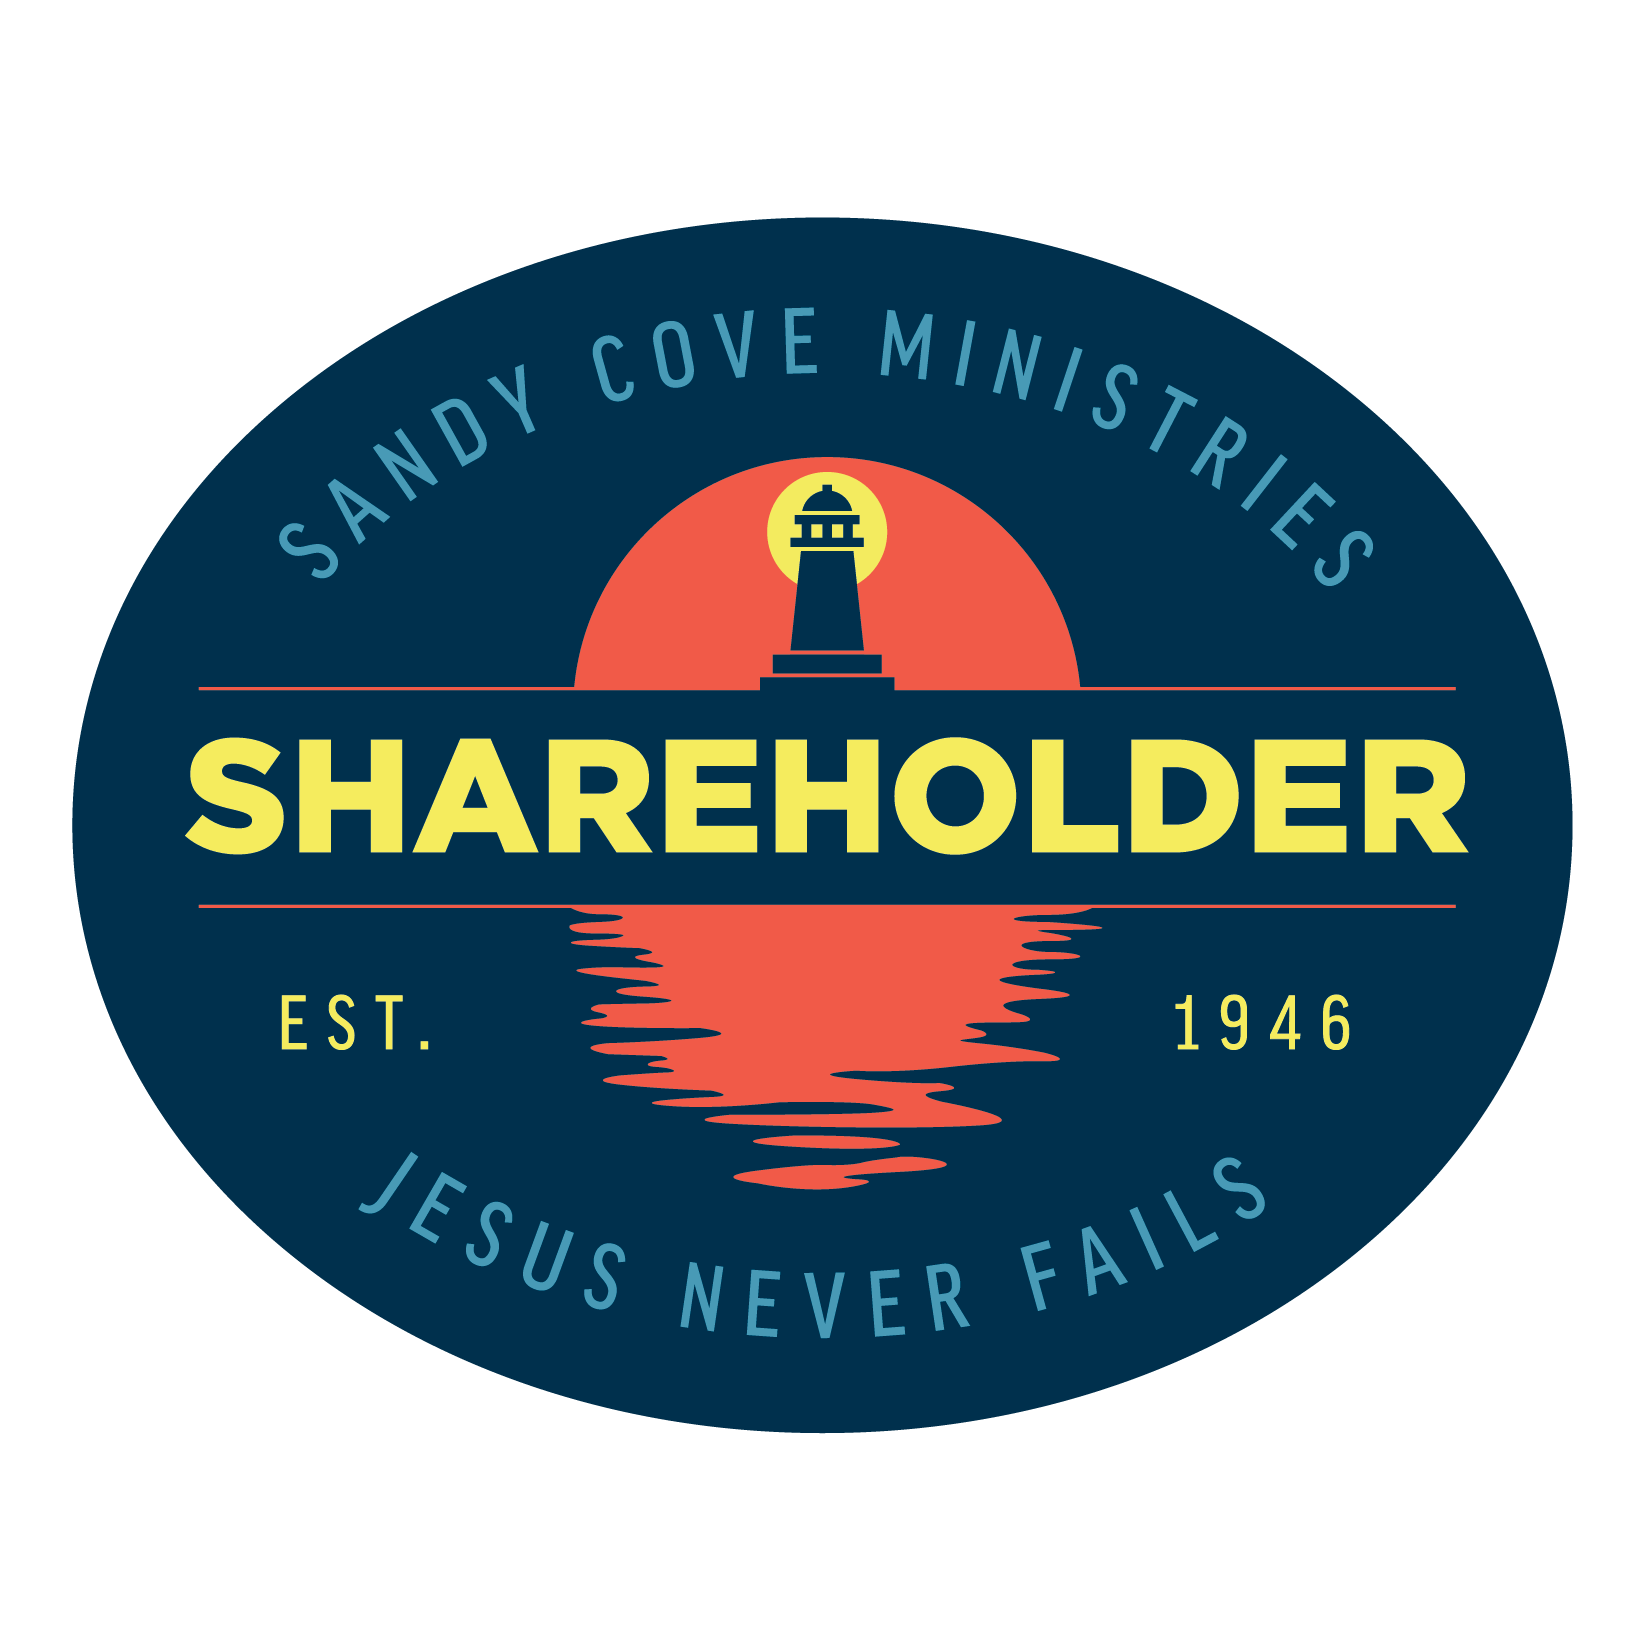 Sandy Cove Shareholder